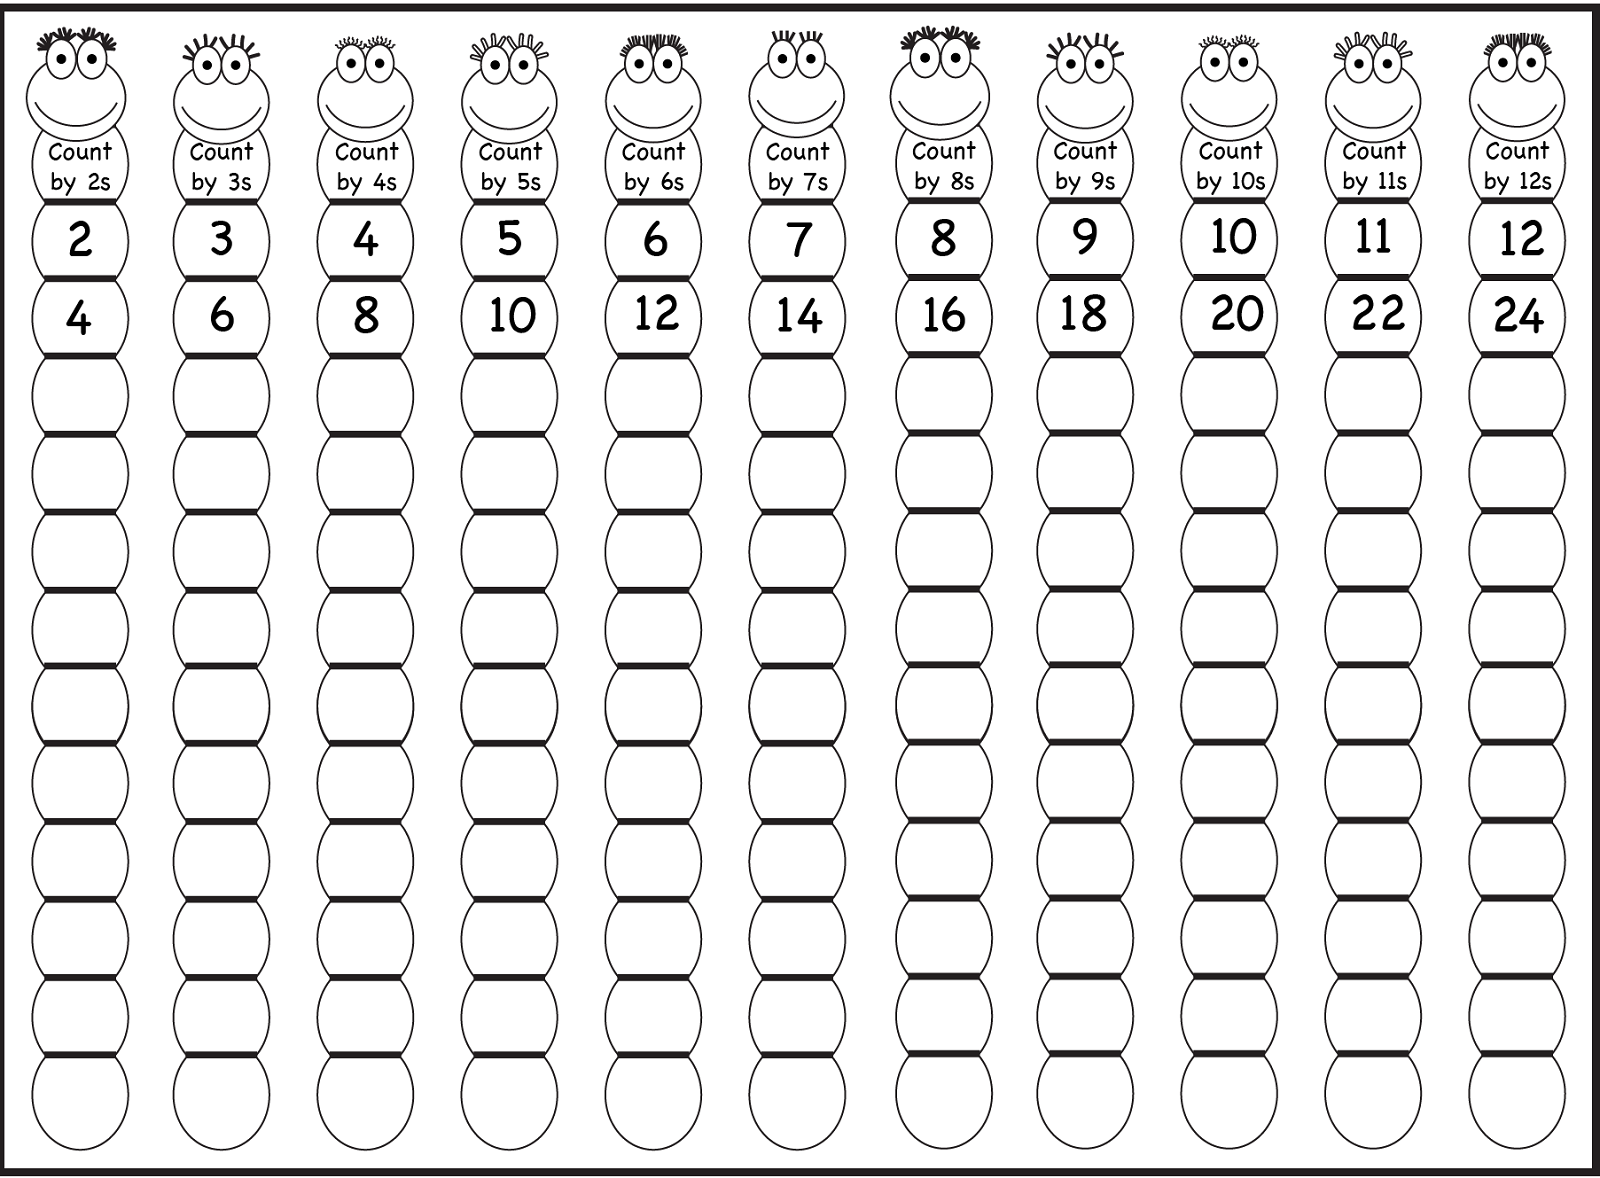 Skip Count By 5 Worksheet 2016 Kiddo Shelter Math Counting